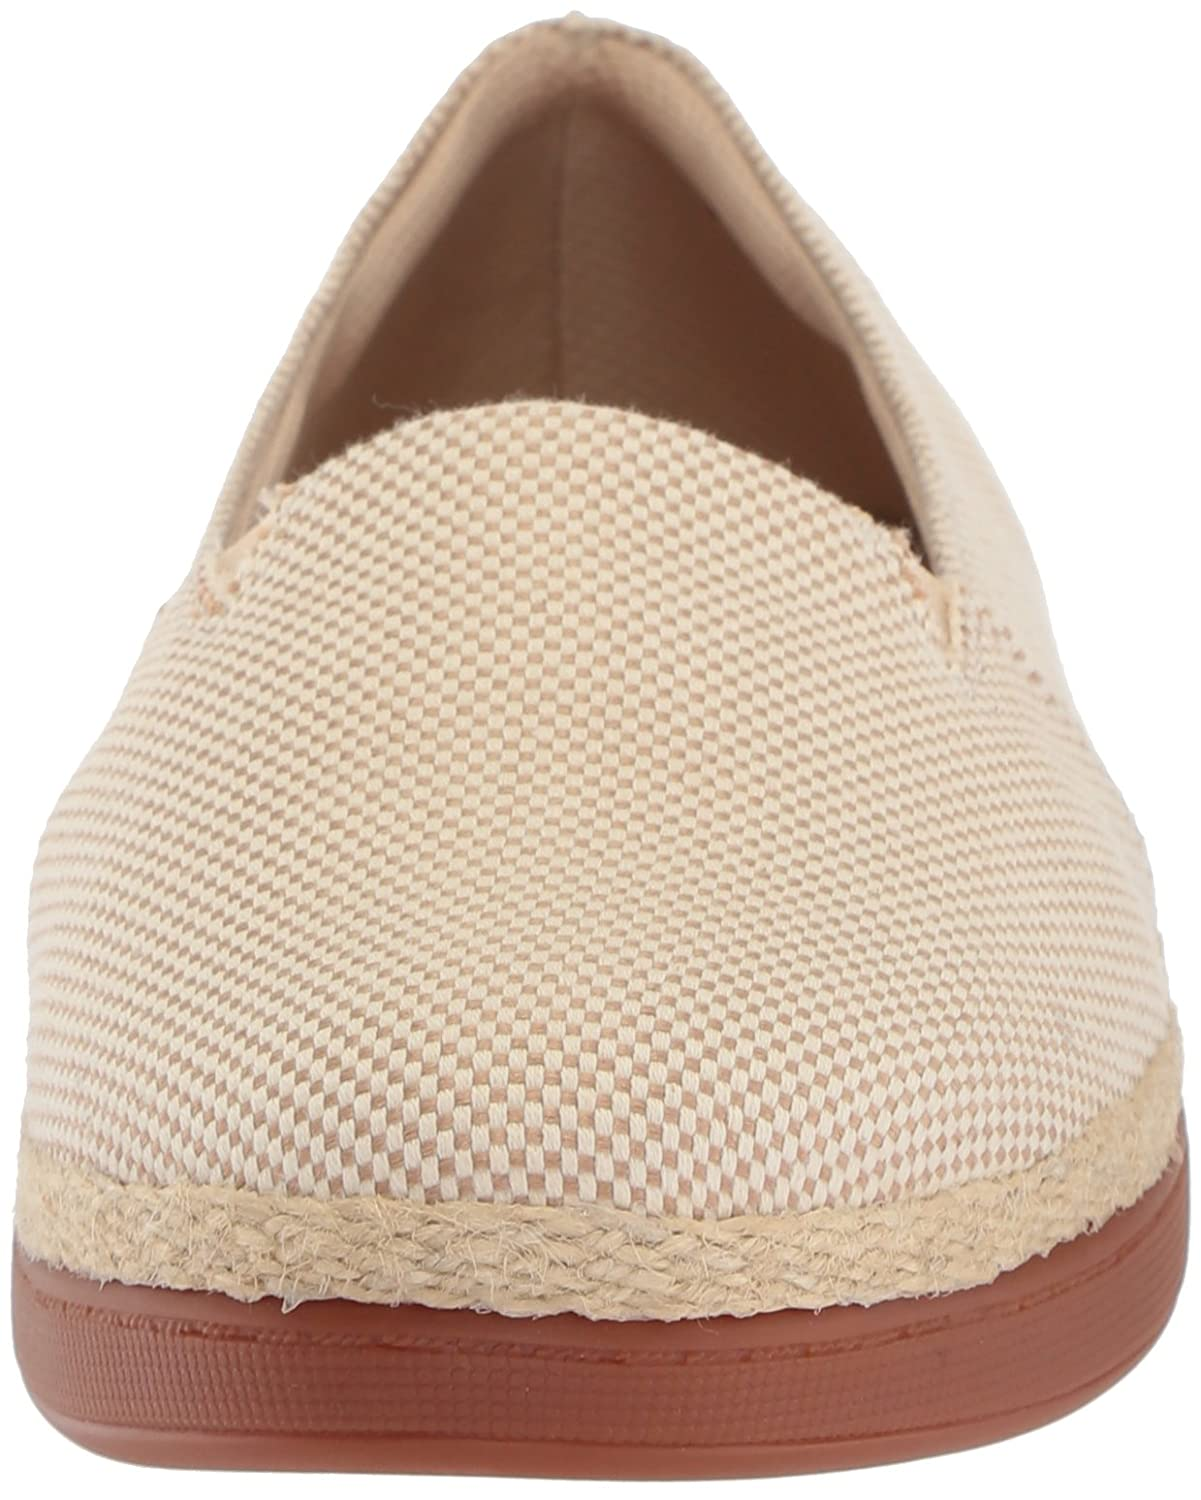 Trotters Women's Accent Ballet US|Natural Flat B073BWD69V 9 W US|Natural Ballet Linen 270883